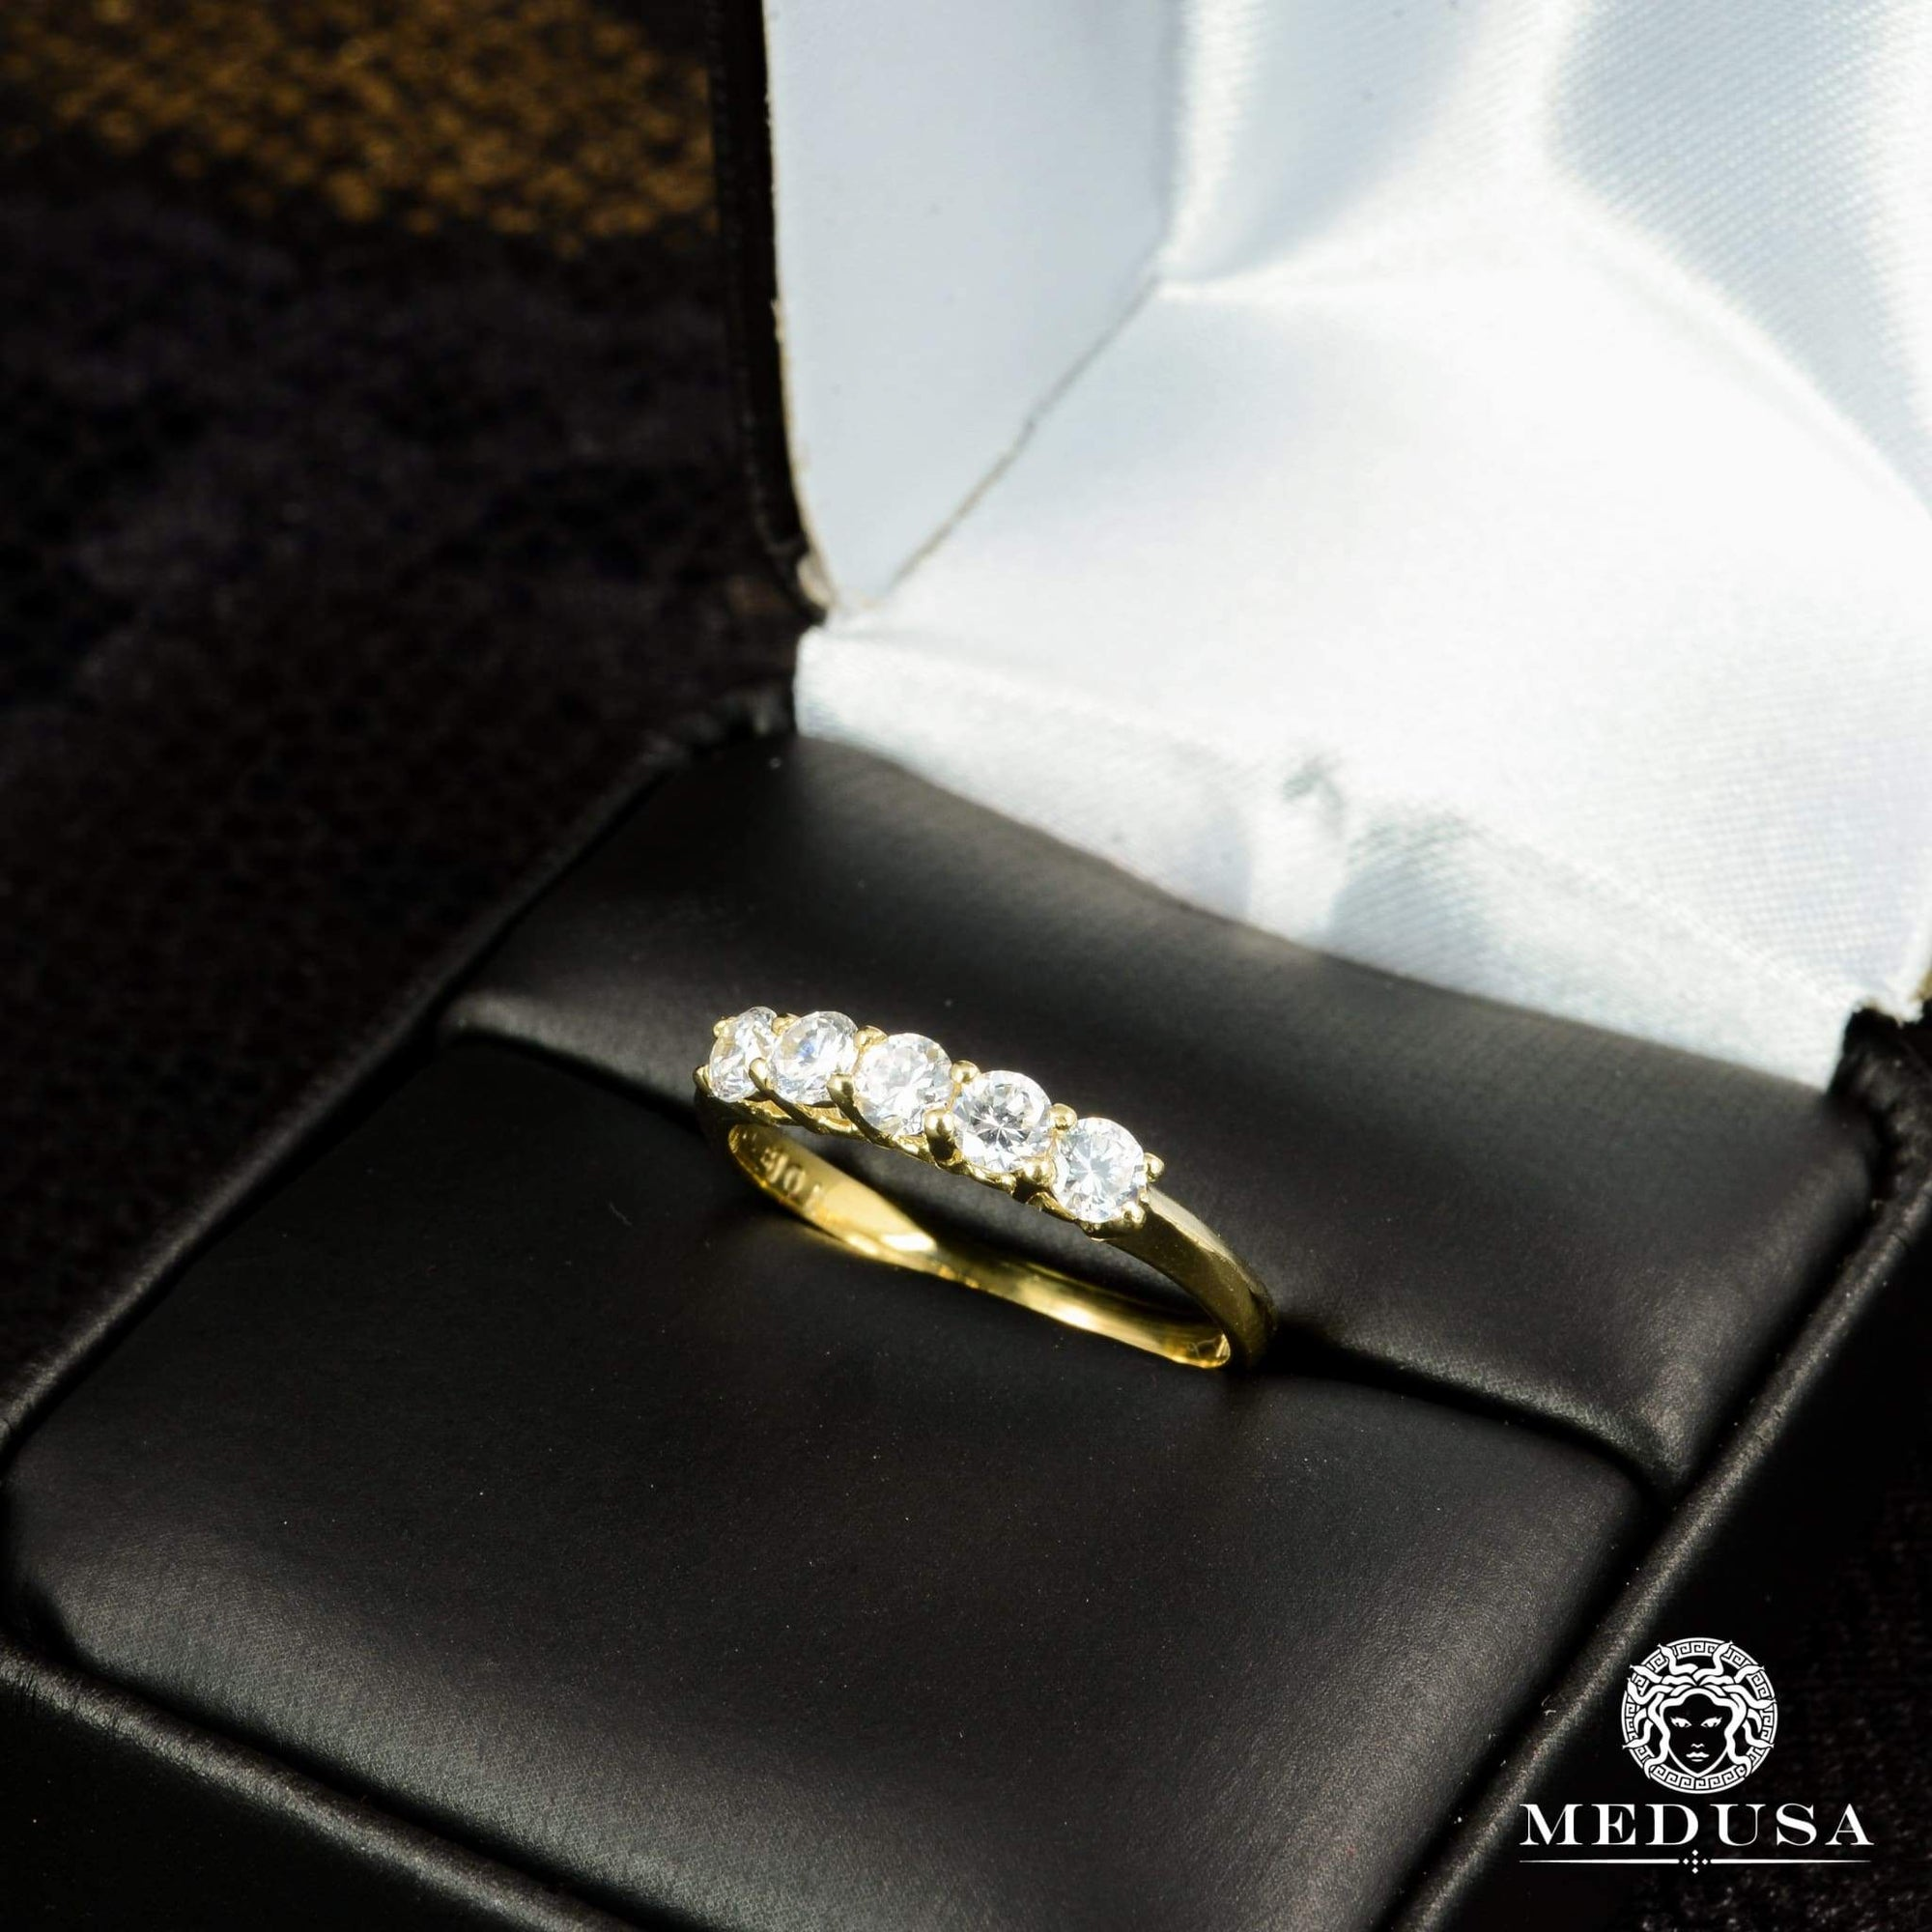 Bague à Diamants en Or 14K | Bague Fiançaille Eternity F12 - MA0710 Or Jaune